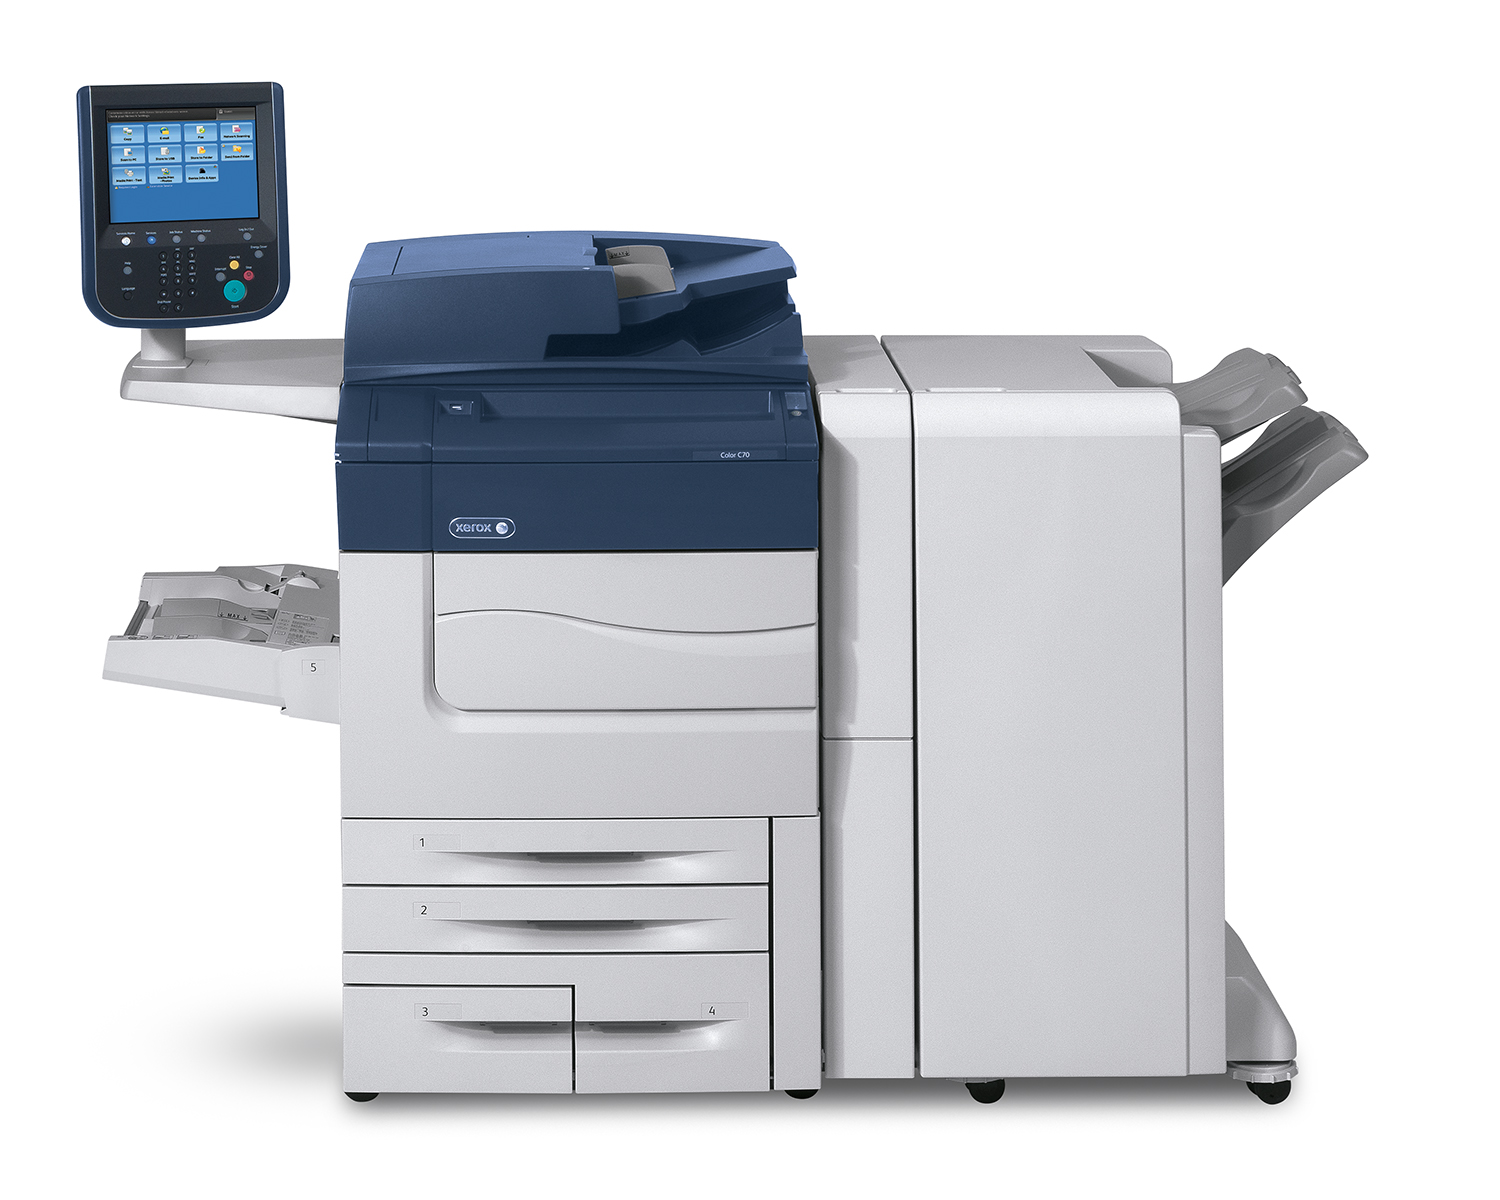 xerox 560 Lease Printer Copier Scanner 55016, 55033, 55071